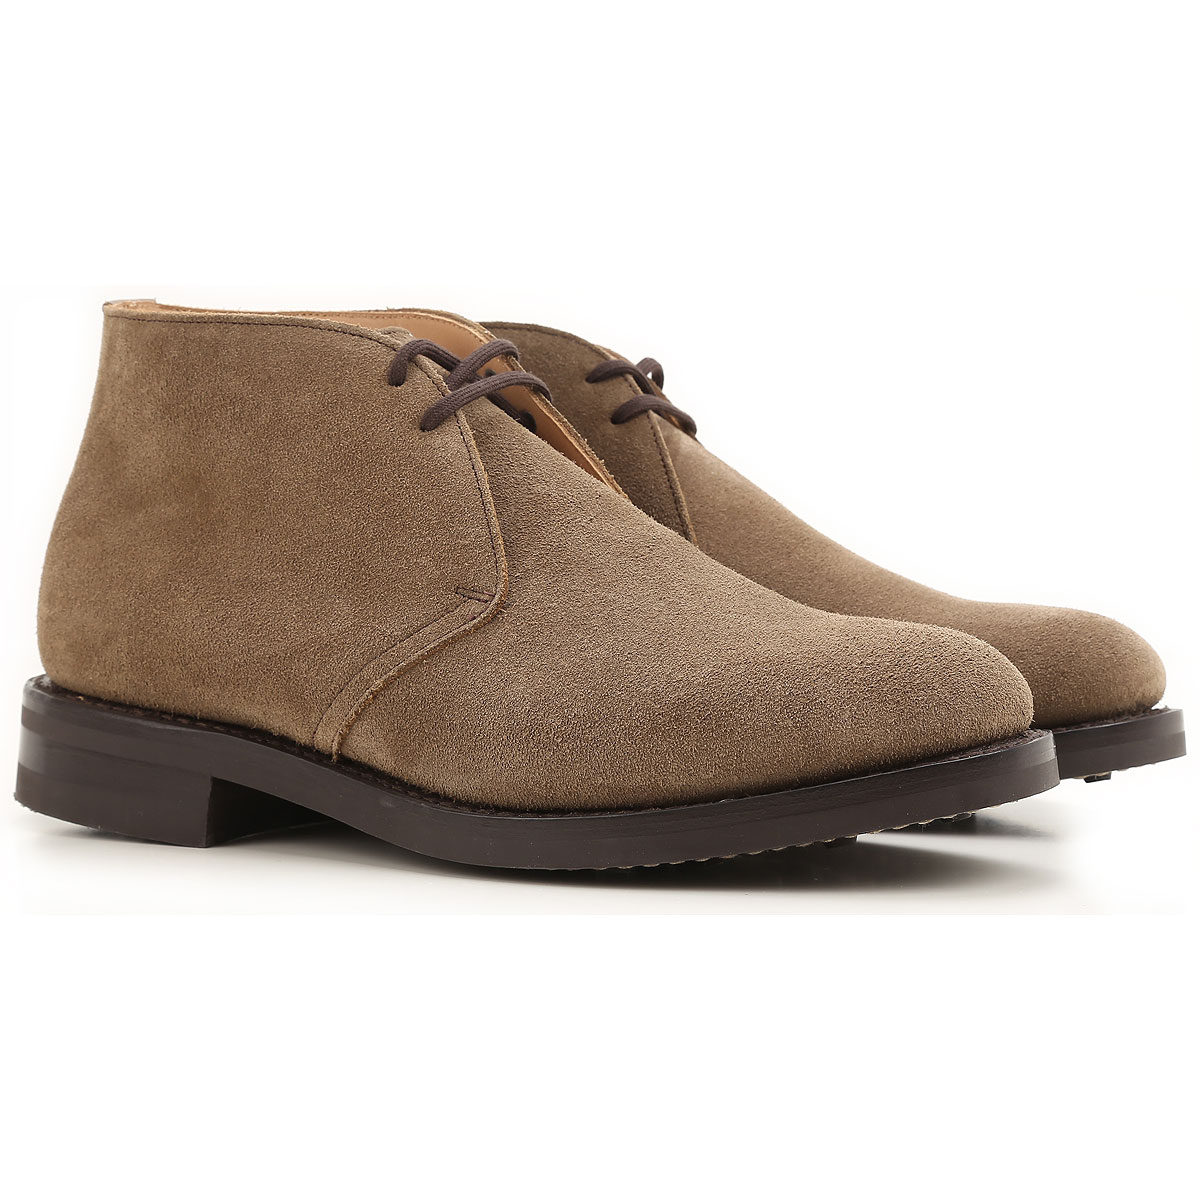 Image of Church's Desert Boots Chukka for Men On Sale, Ryder3, Mud, Suede leather, 2017, 11 7 7.5 8.5